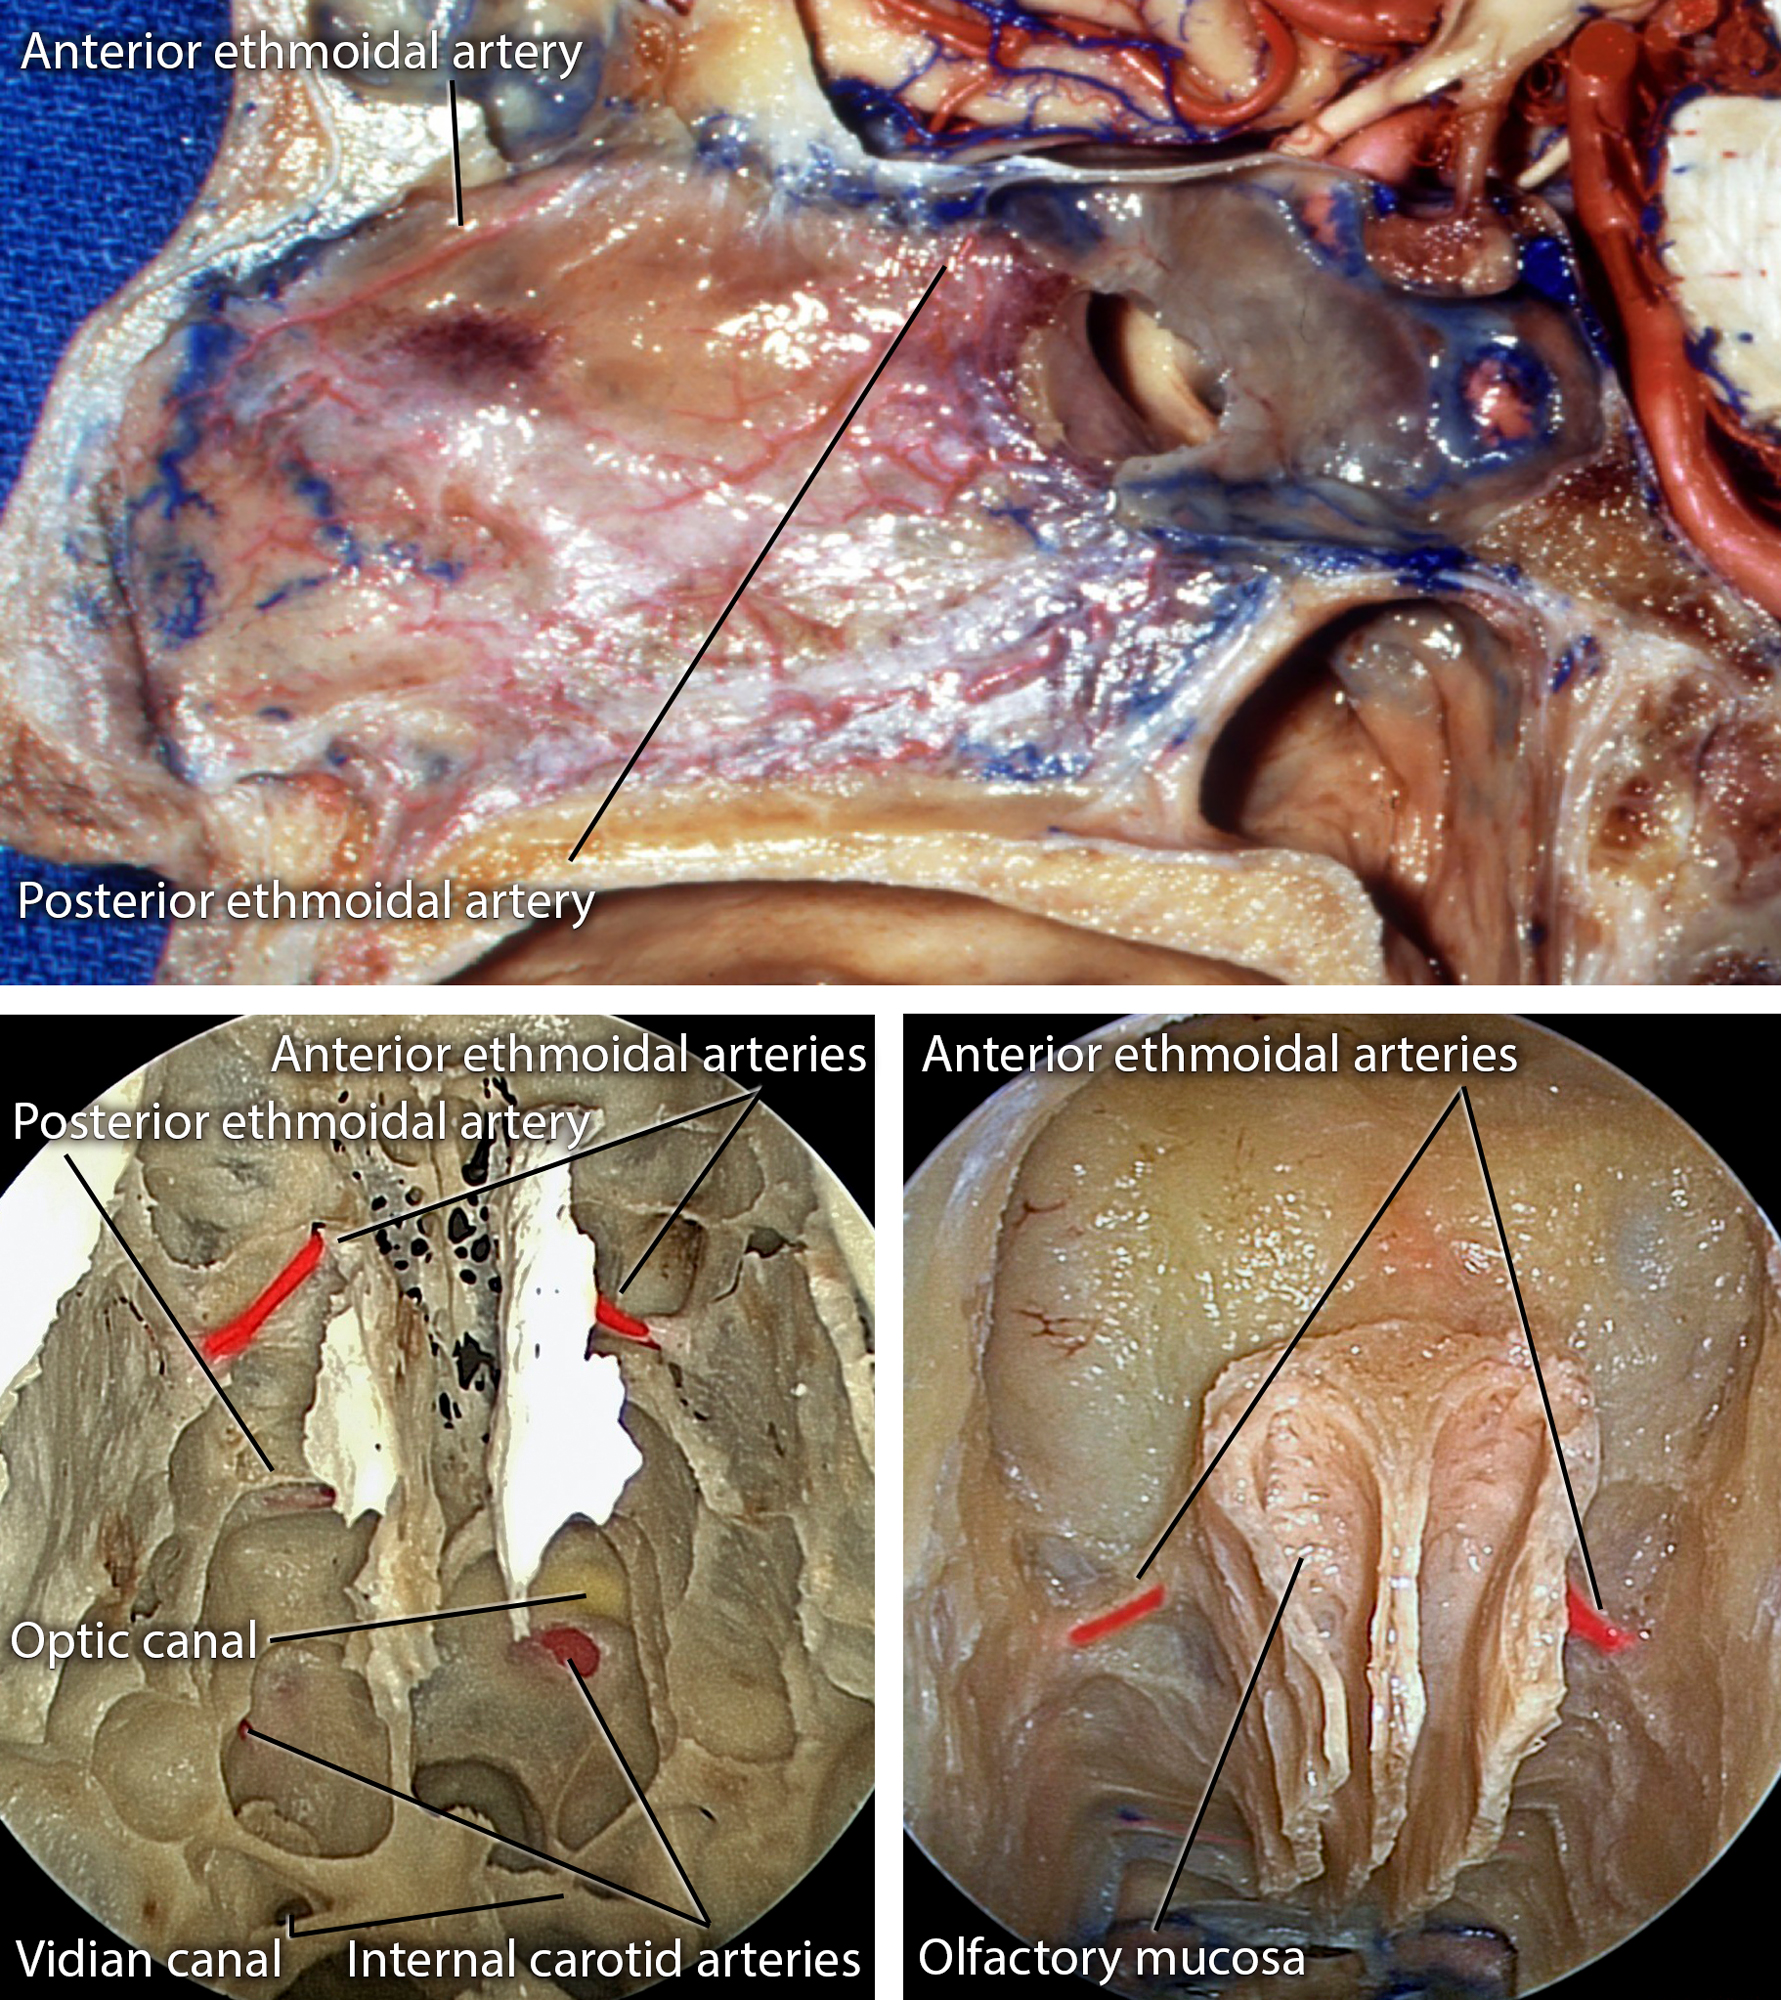 Figure 4: The vascular anatomy to OGMs observed via the endoscopic transnasal approach is shown. Note the location of the anterior and posterior ethmoidal arteries (images courtesy of AL Rhoton, Jr). The final bony exposure is demonstrated in the bottom row.